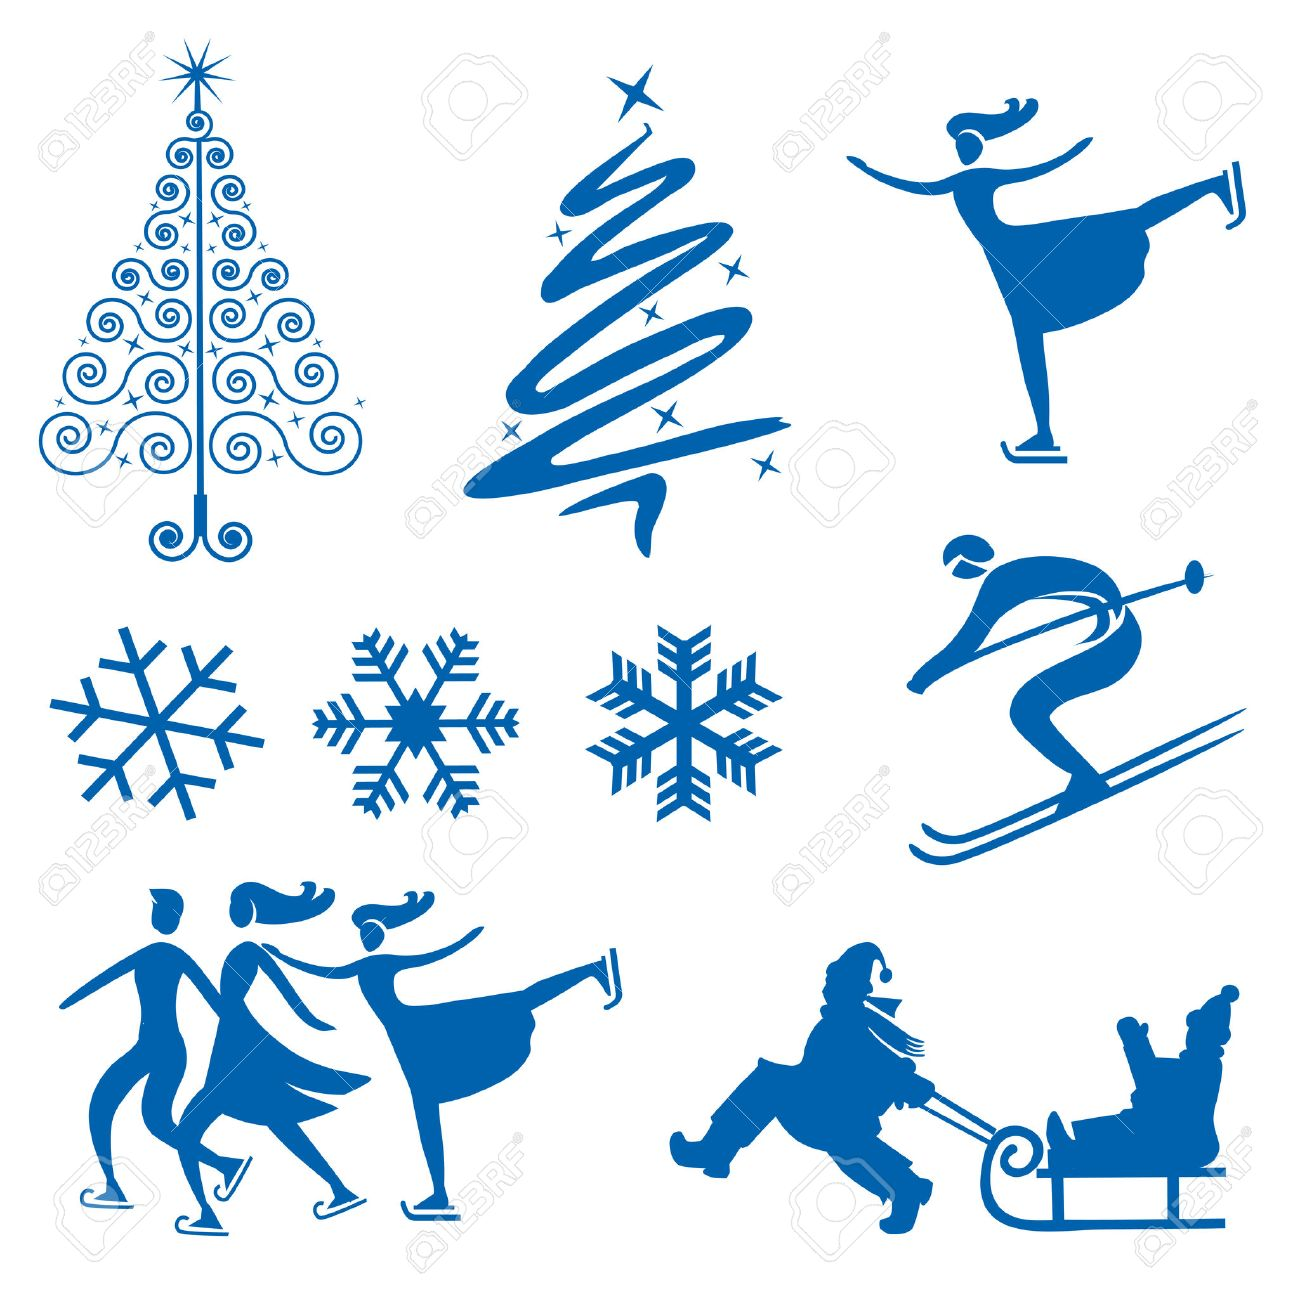 Set of winter christmas design elements  silhouettes of snowflakes christmas trees and Ice skaters  Vector illustration Stock Vector - 23215624